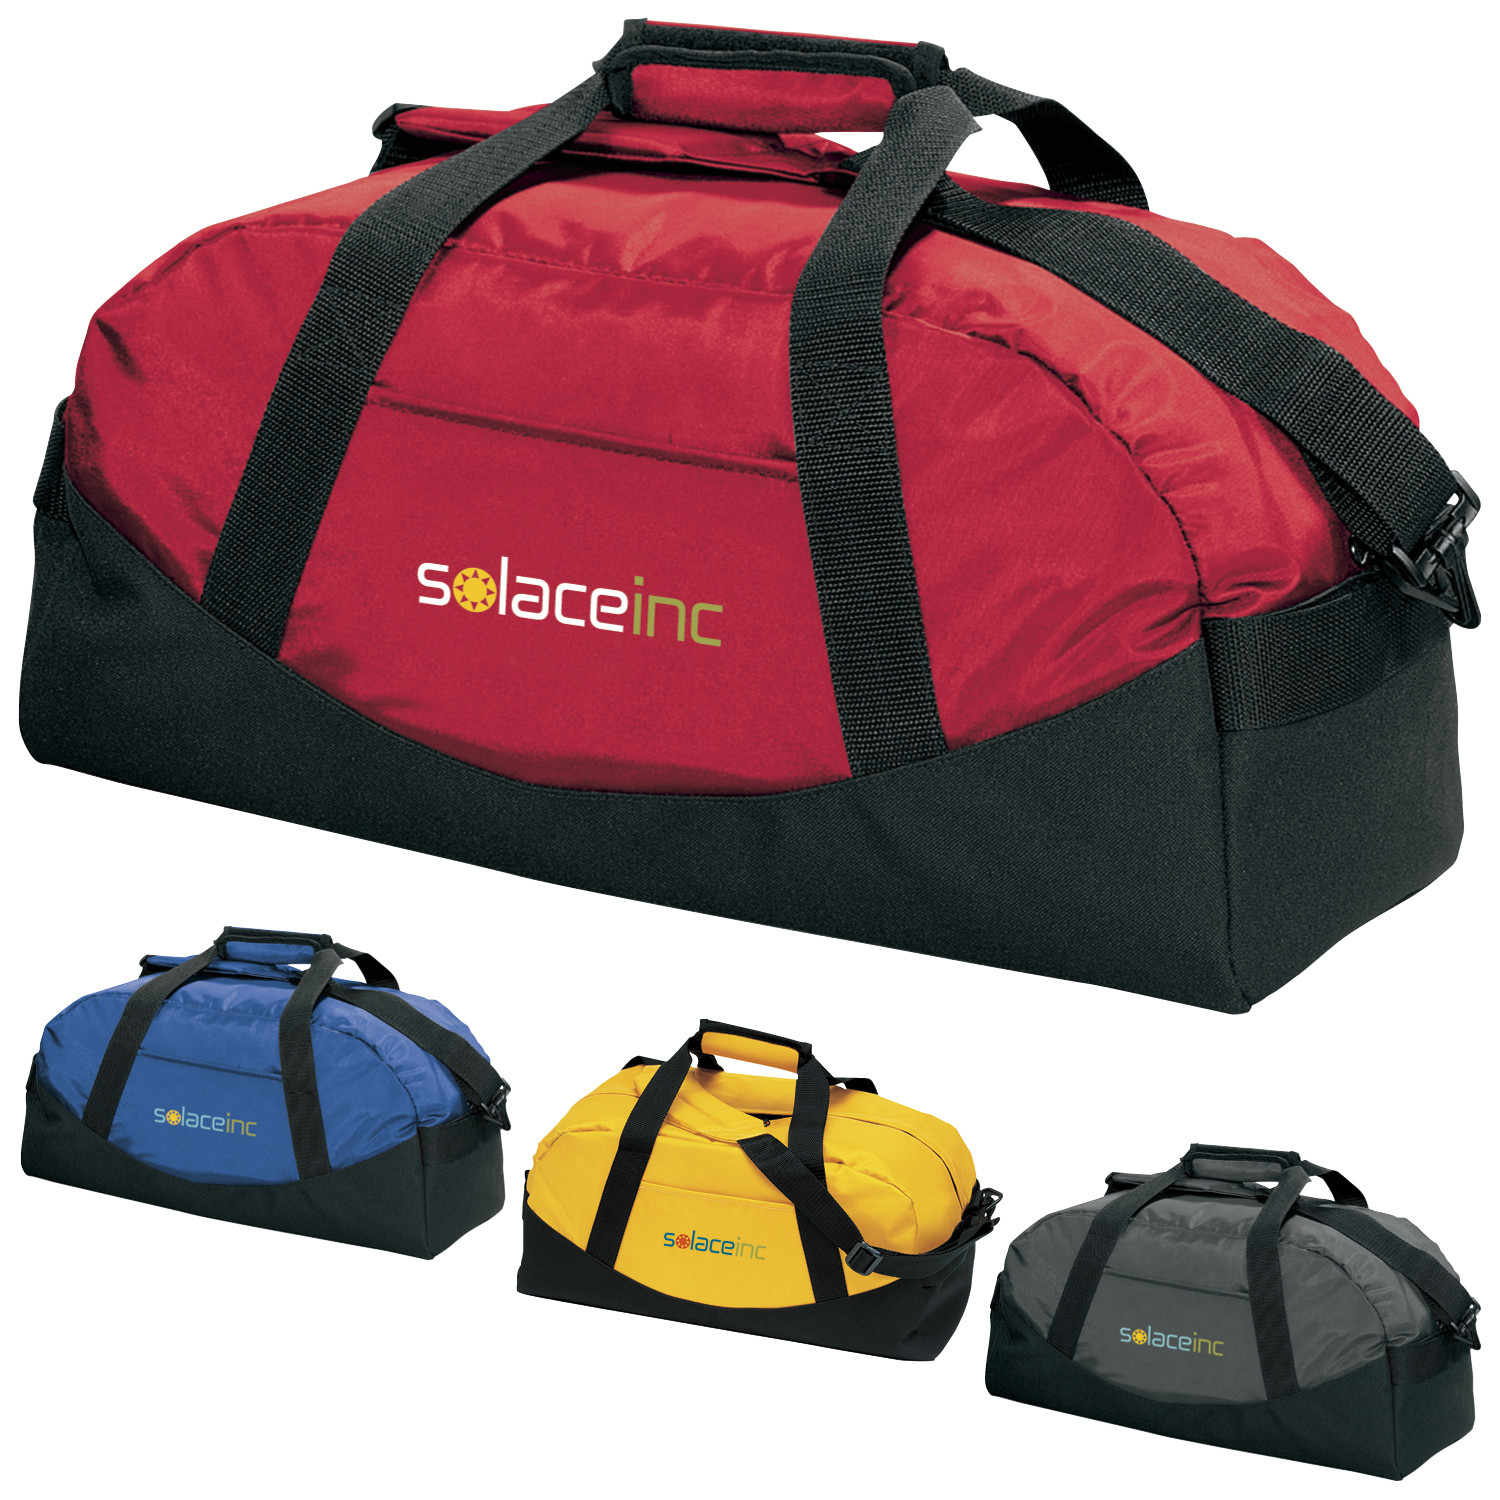 Large Classic Cargo Duffel Bag - 1 Colour Imprint